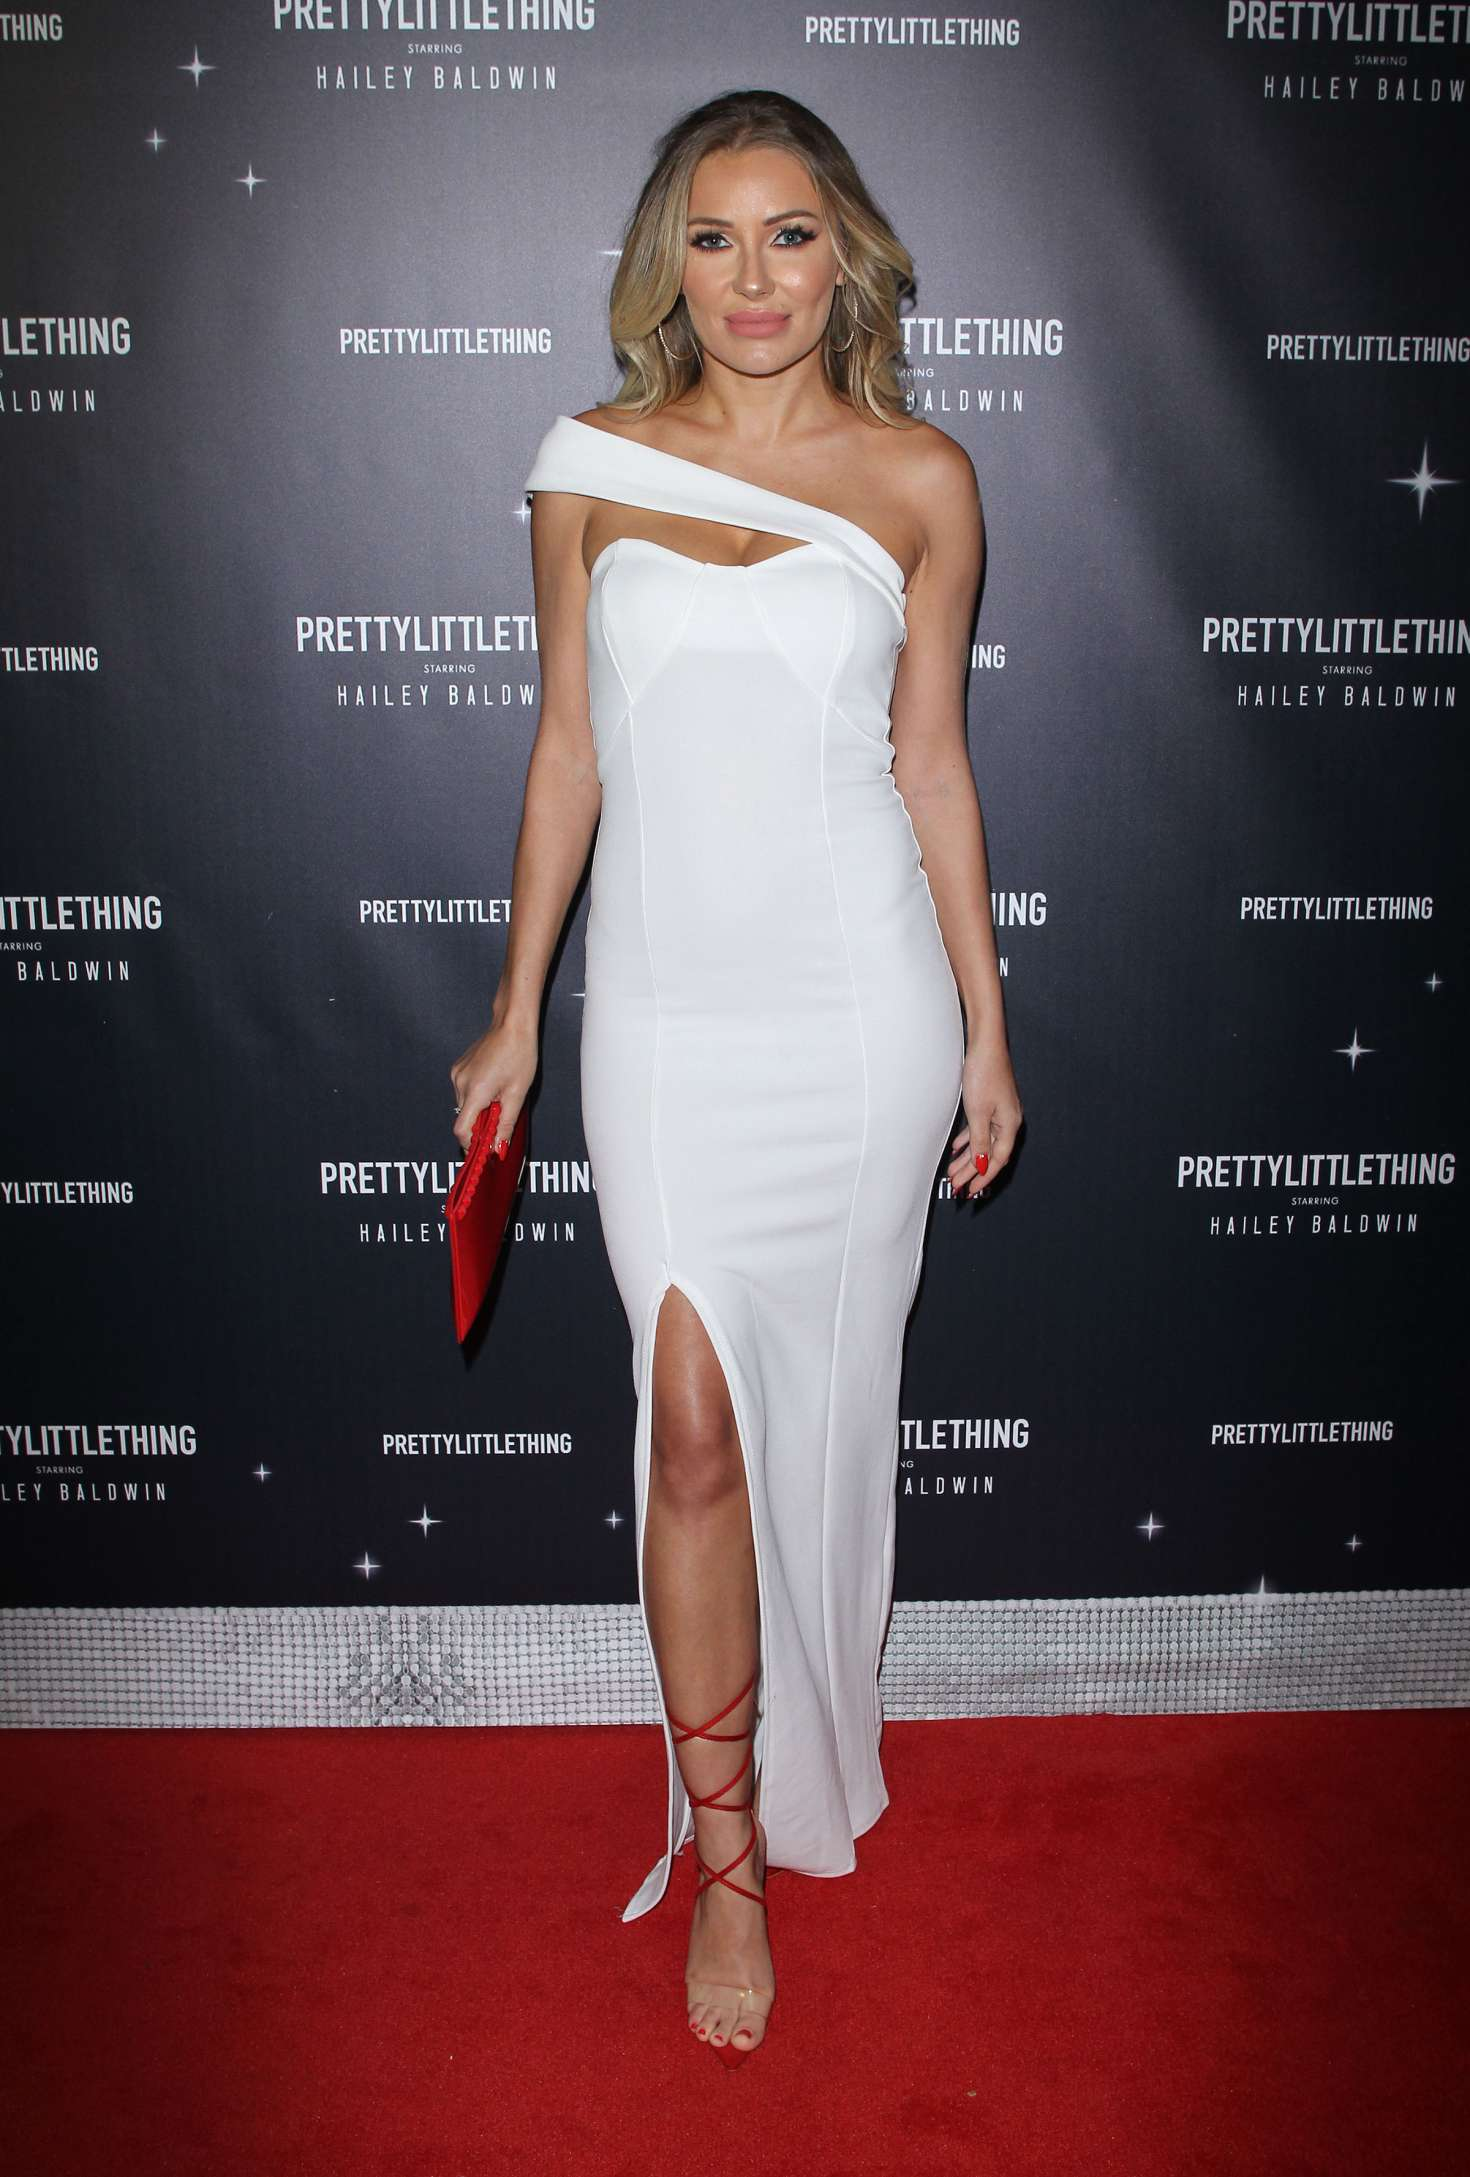 Anya Benton 2018 : Anya Benton: PrettyLittleThing x Hailey Baldwin Launch Event -05